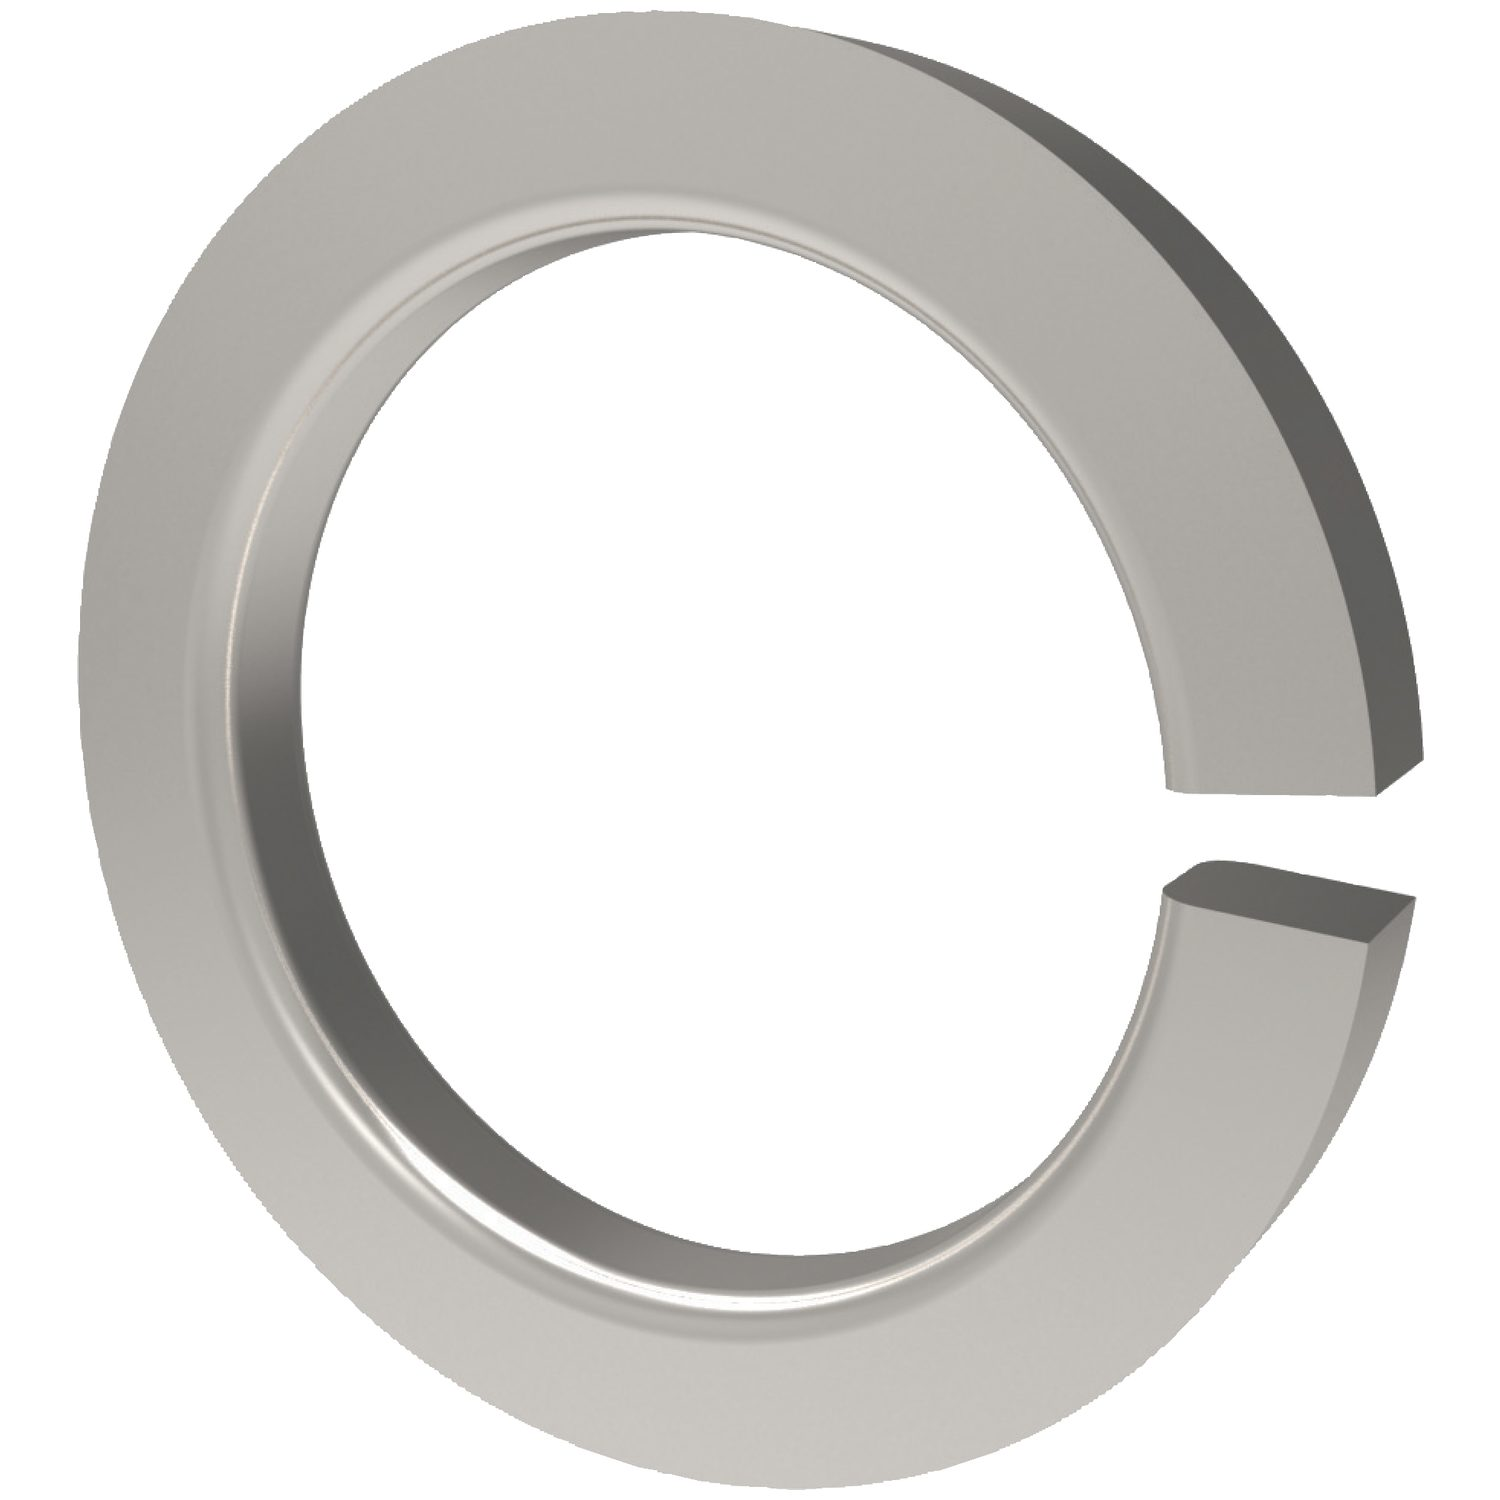 Square Section Washers